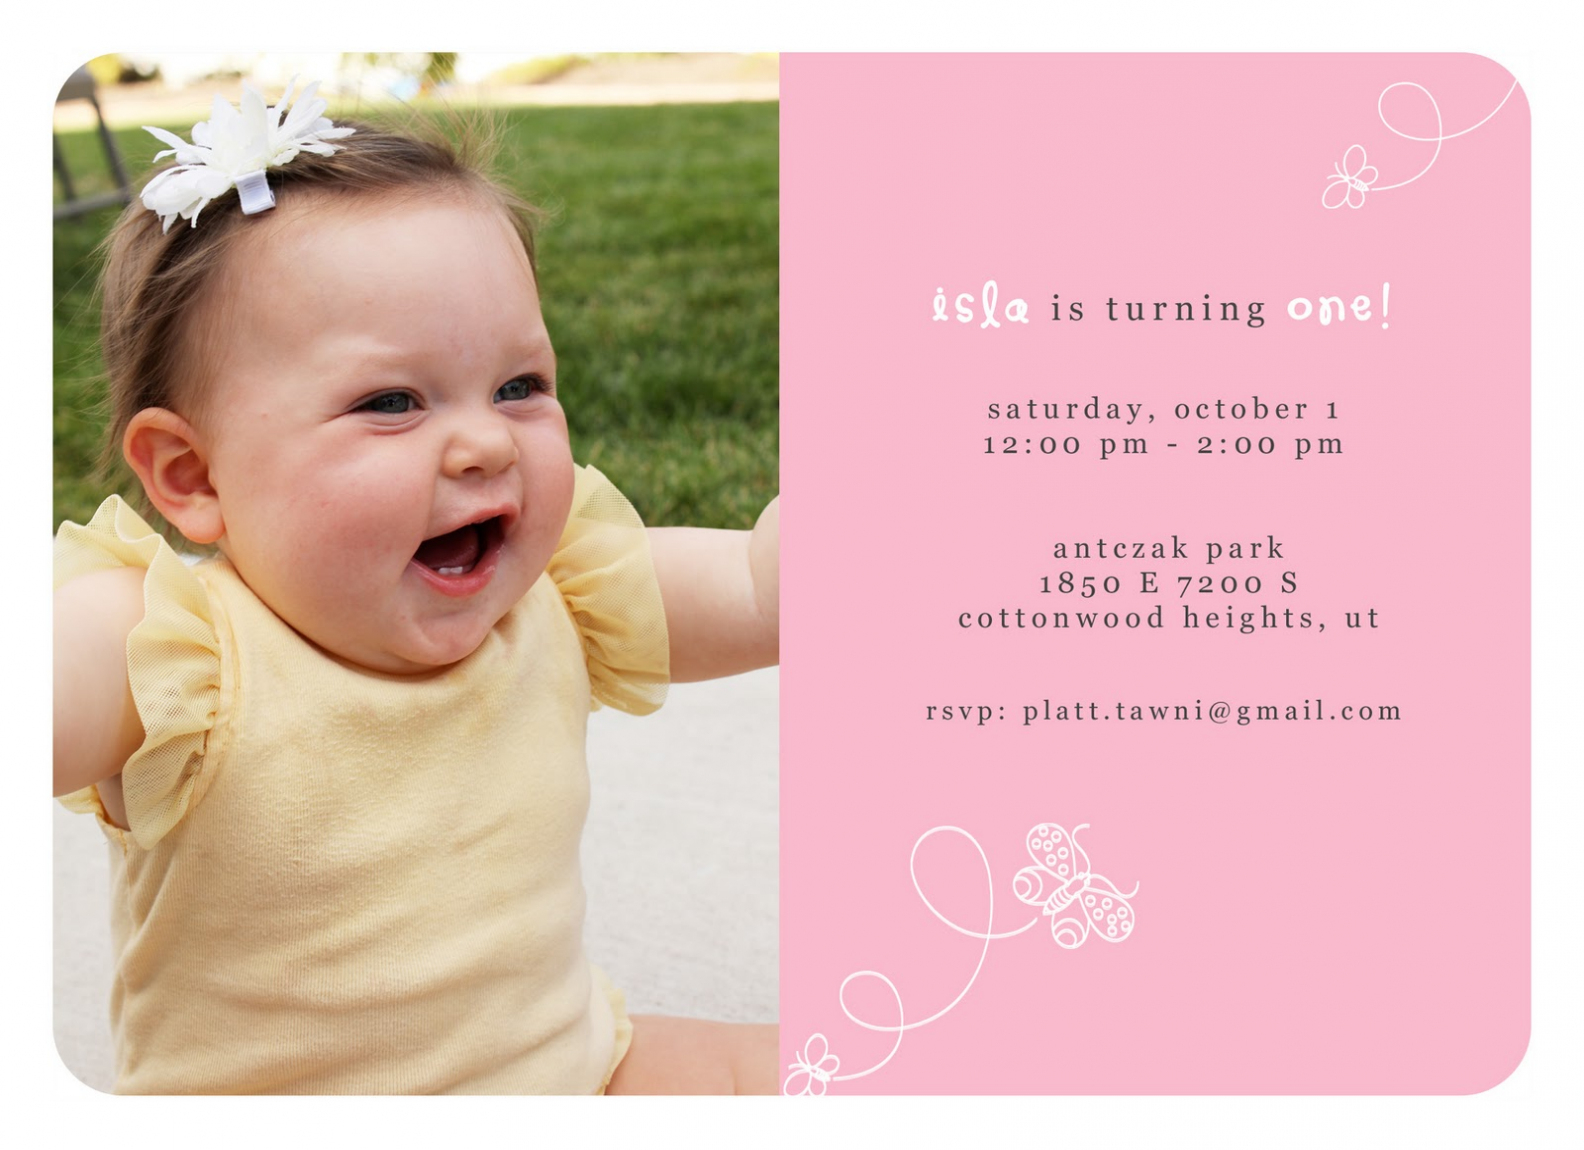 online birthday invitation card maker with photo ; birthday-invitations-online-free-birthday-invitations-online-free-1st-birthday-invitation-card-maker